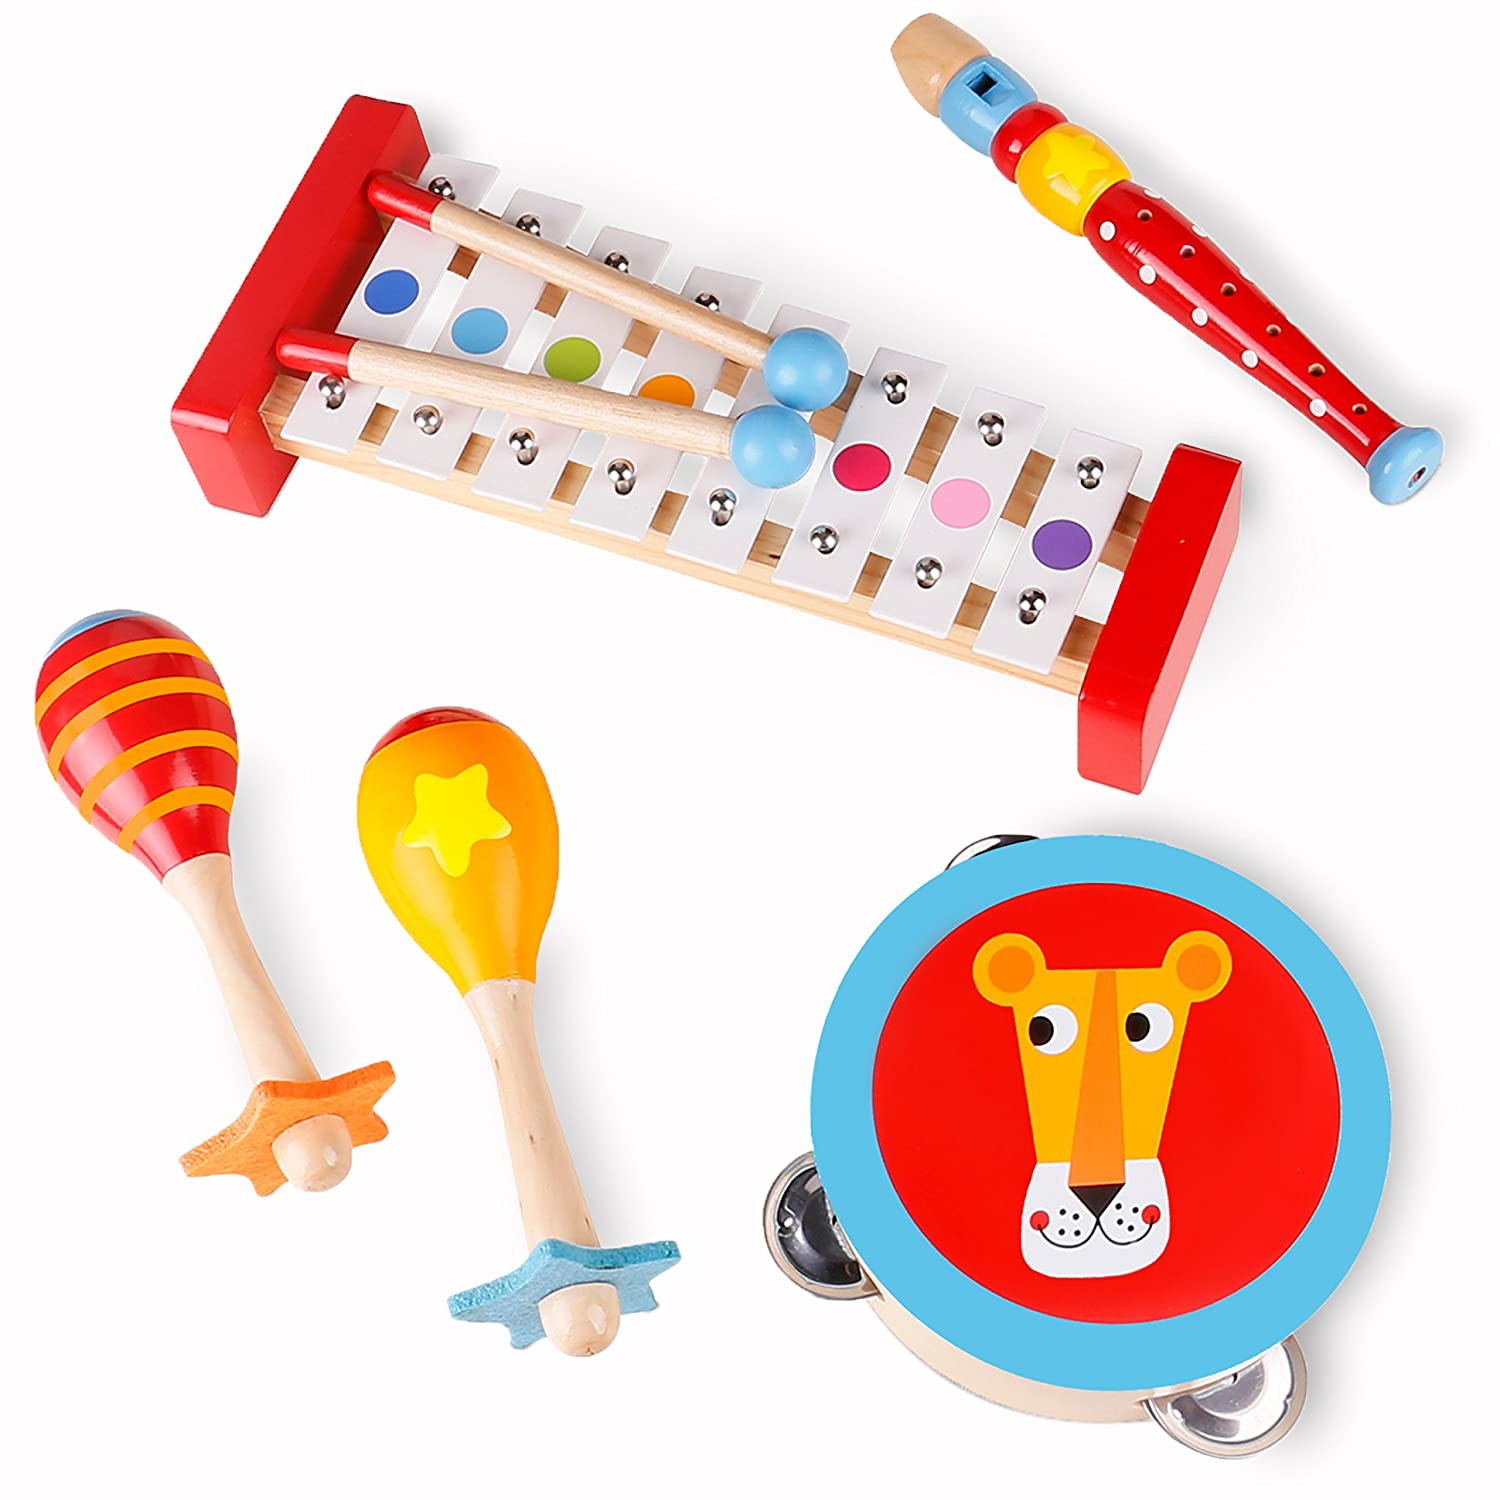 USA Toyz Wooden Musical Toys and Kids Instruments - Musical Instruments for Children, Toddlers, Baby, Summer Toys for Summer Camp Activities